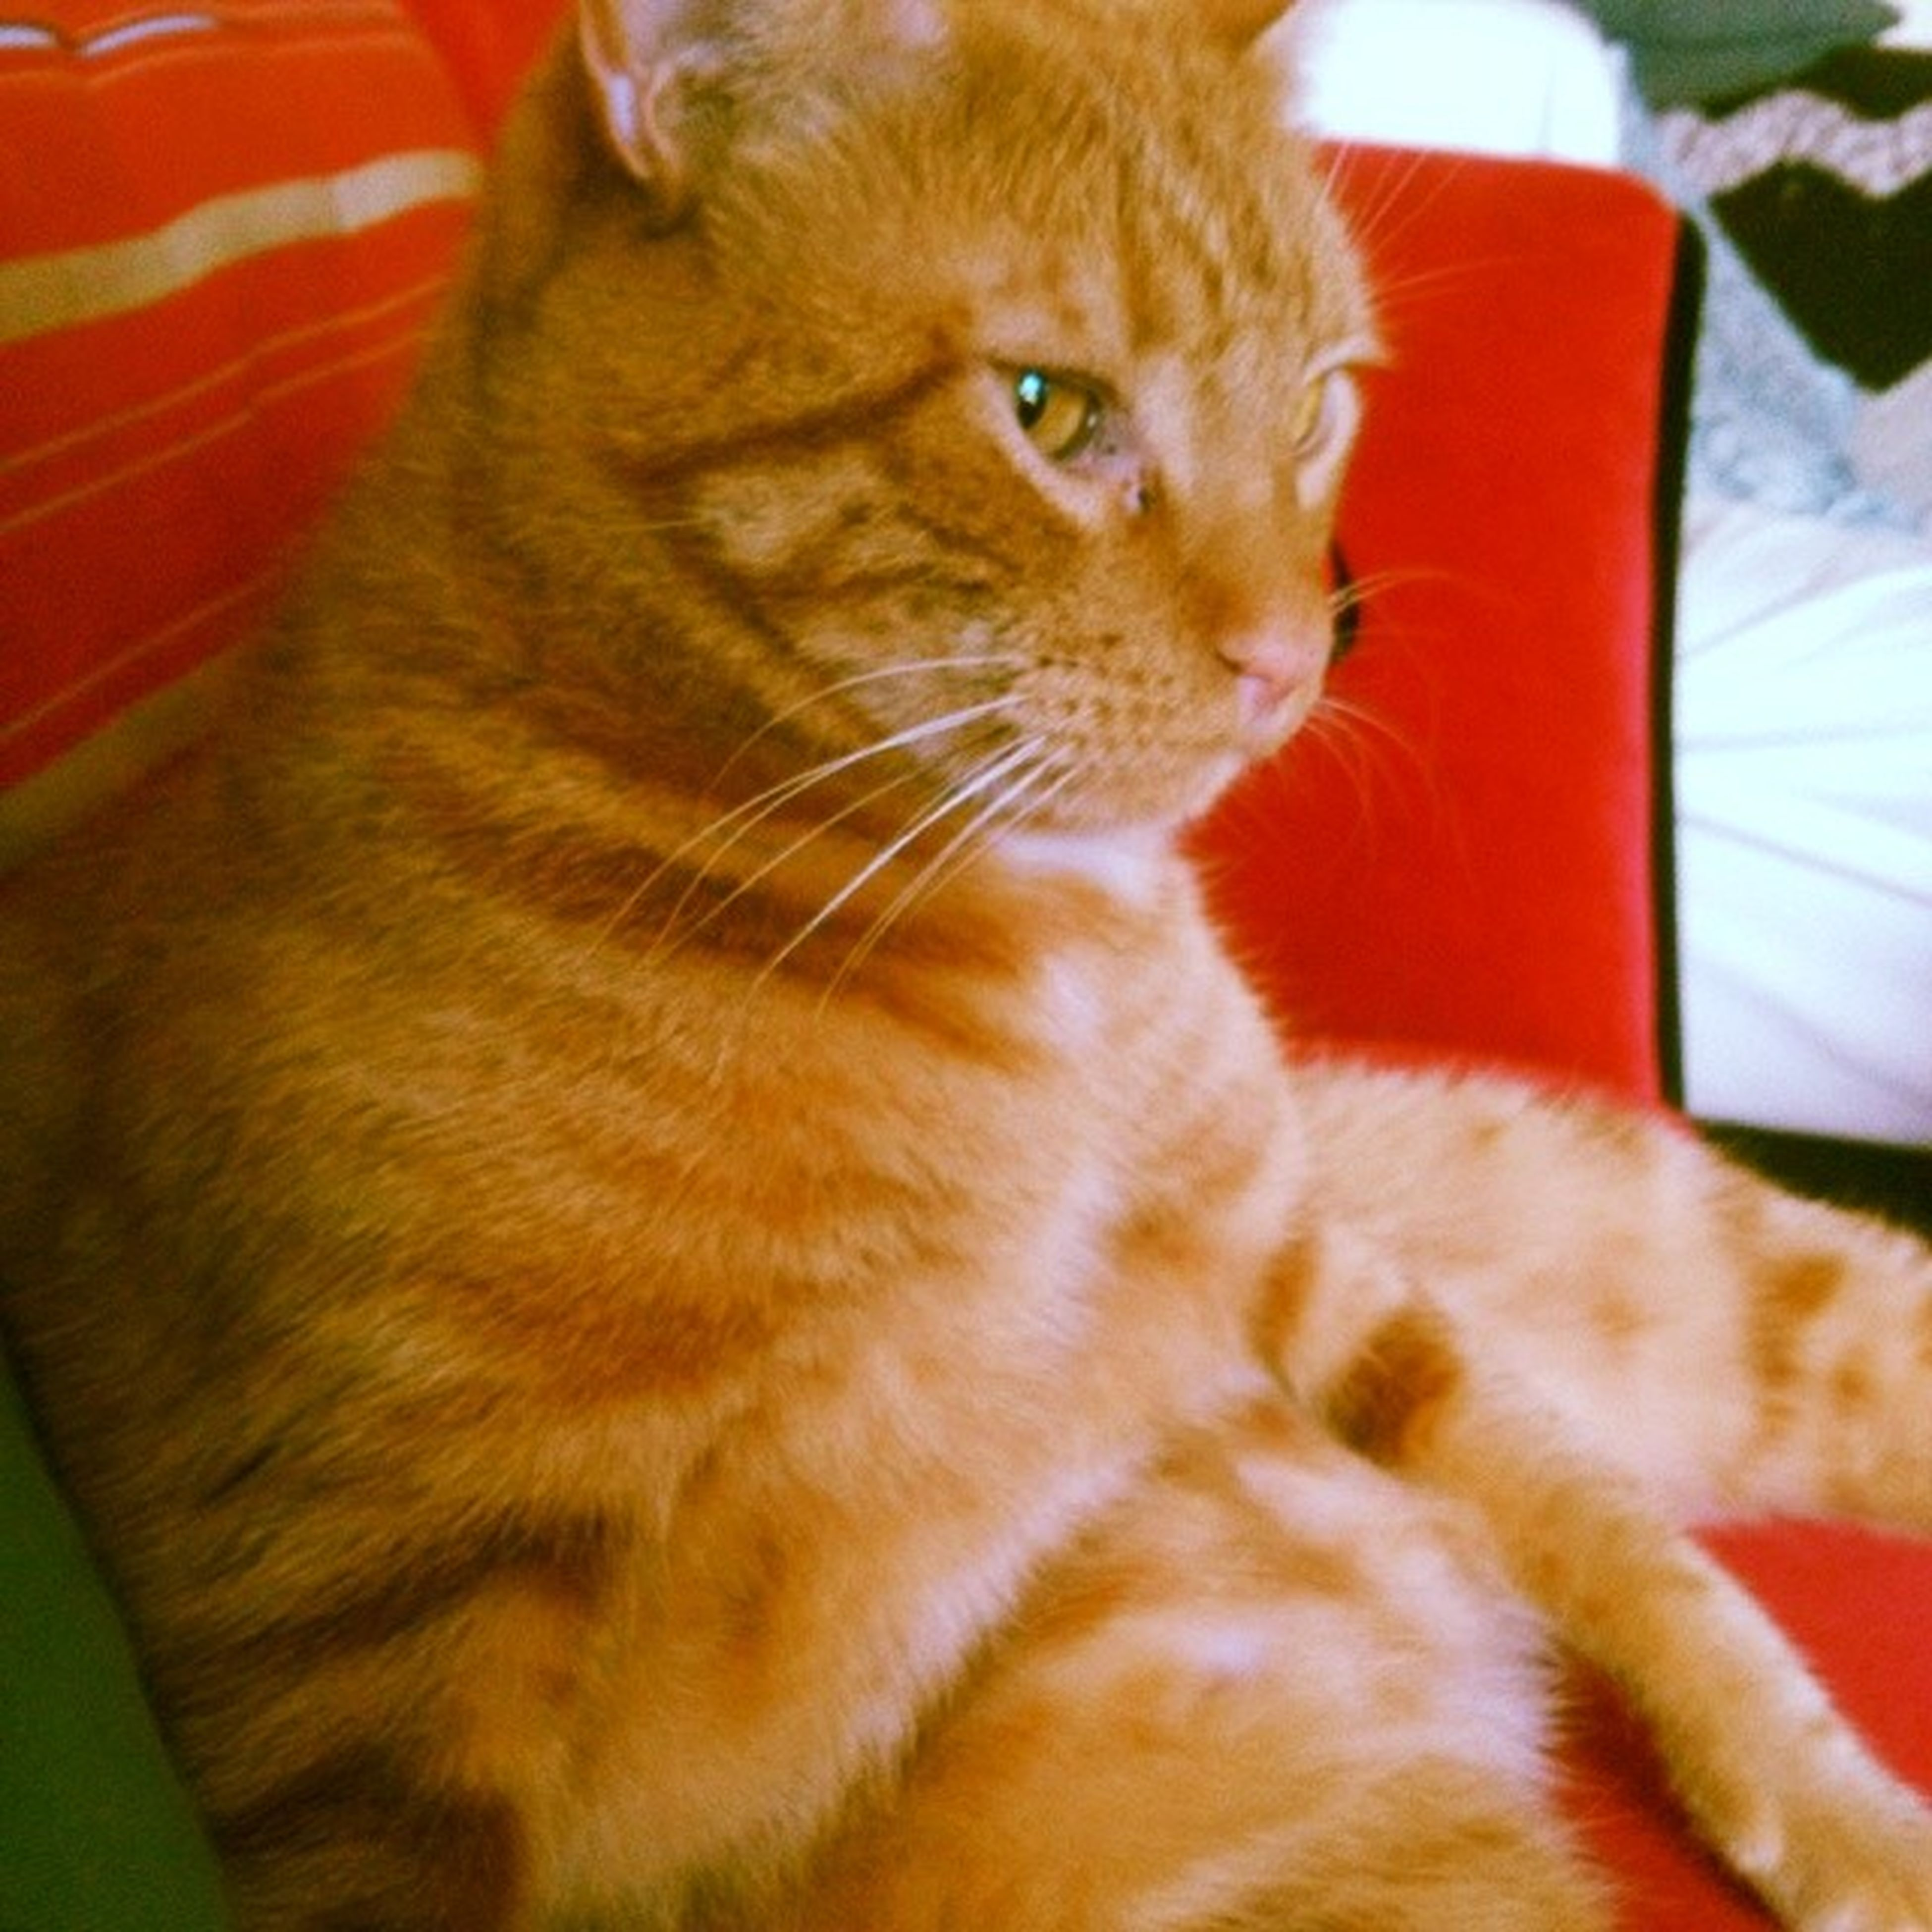 domestic cat, cat, feline, pets, one animal, animal themes, domestic animals, mammal, whisker, indoors, close-up, relaxation, looking away, orange color, alertness, animal head, no people, resting, tabby, home interior